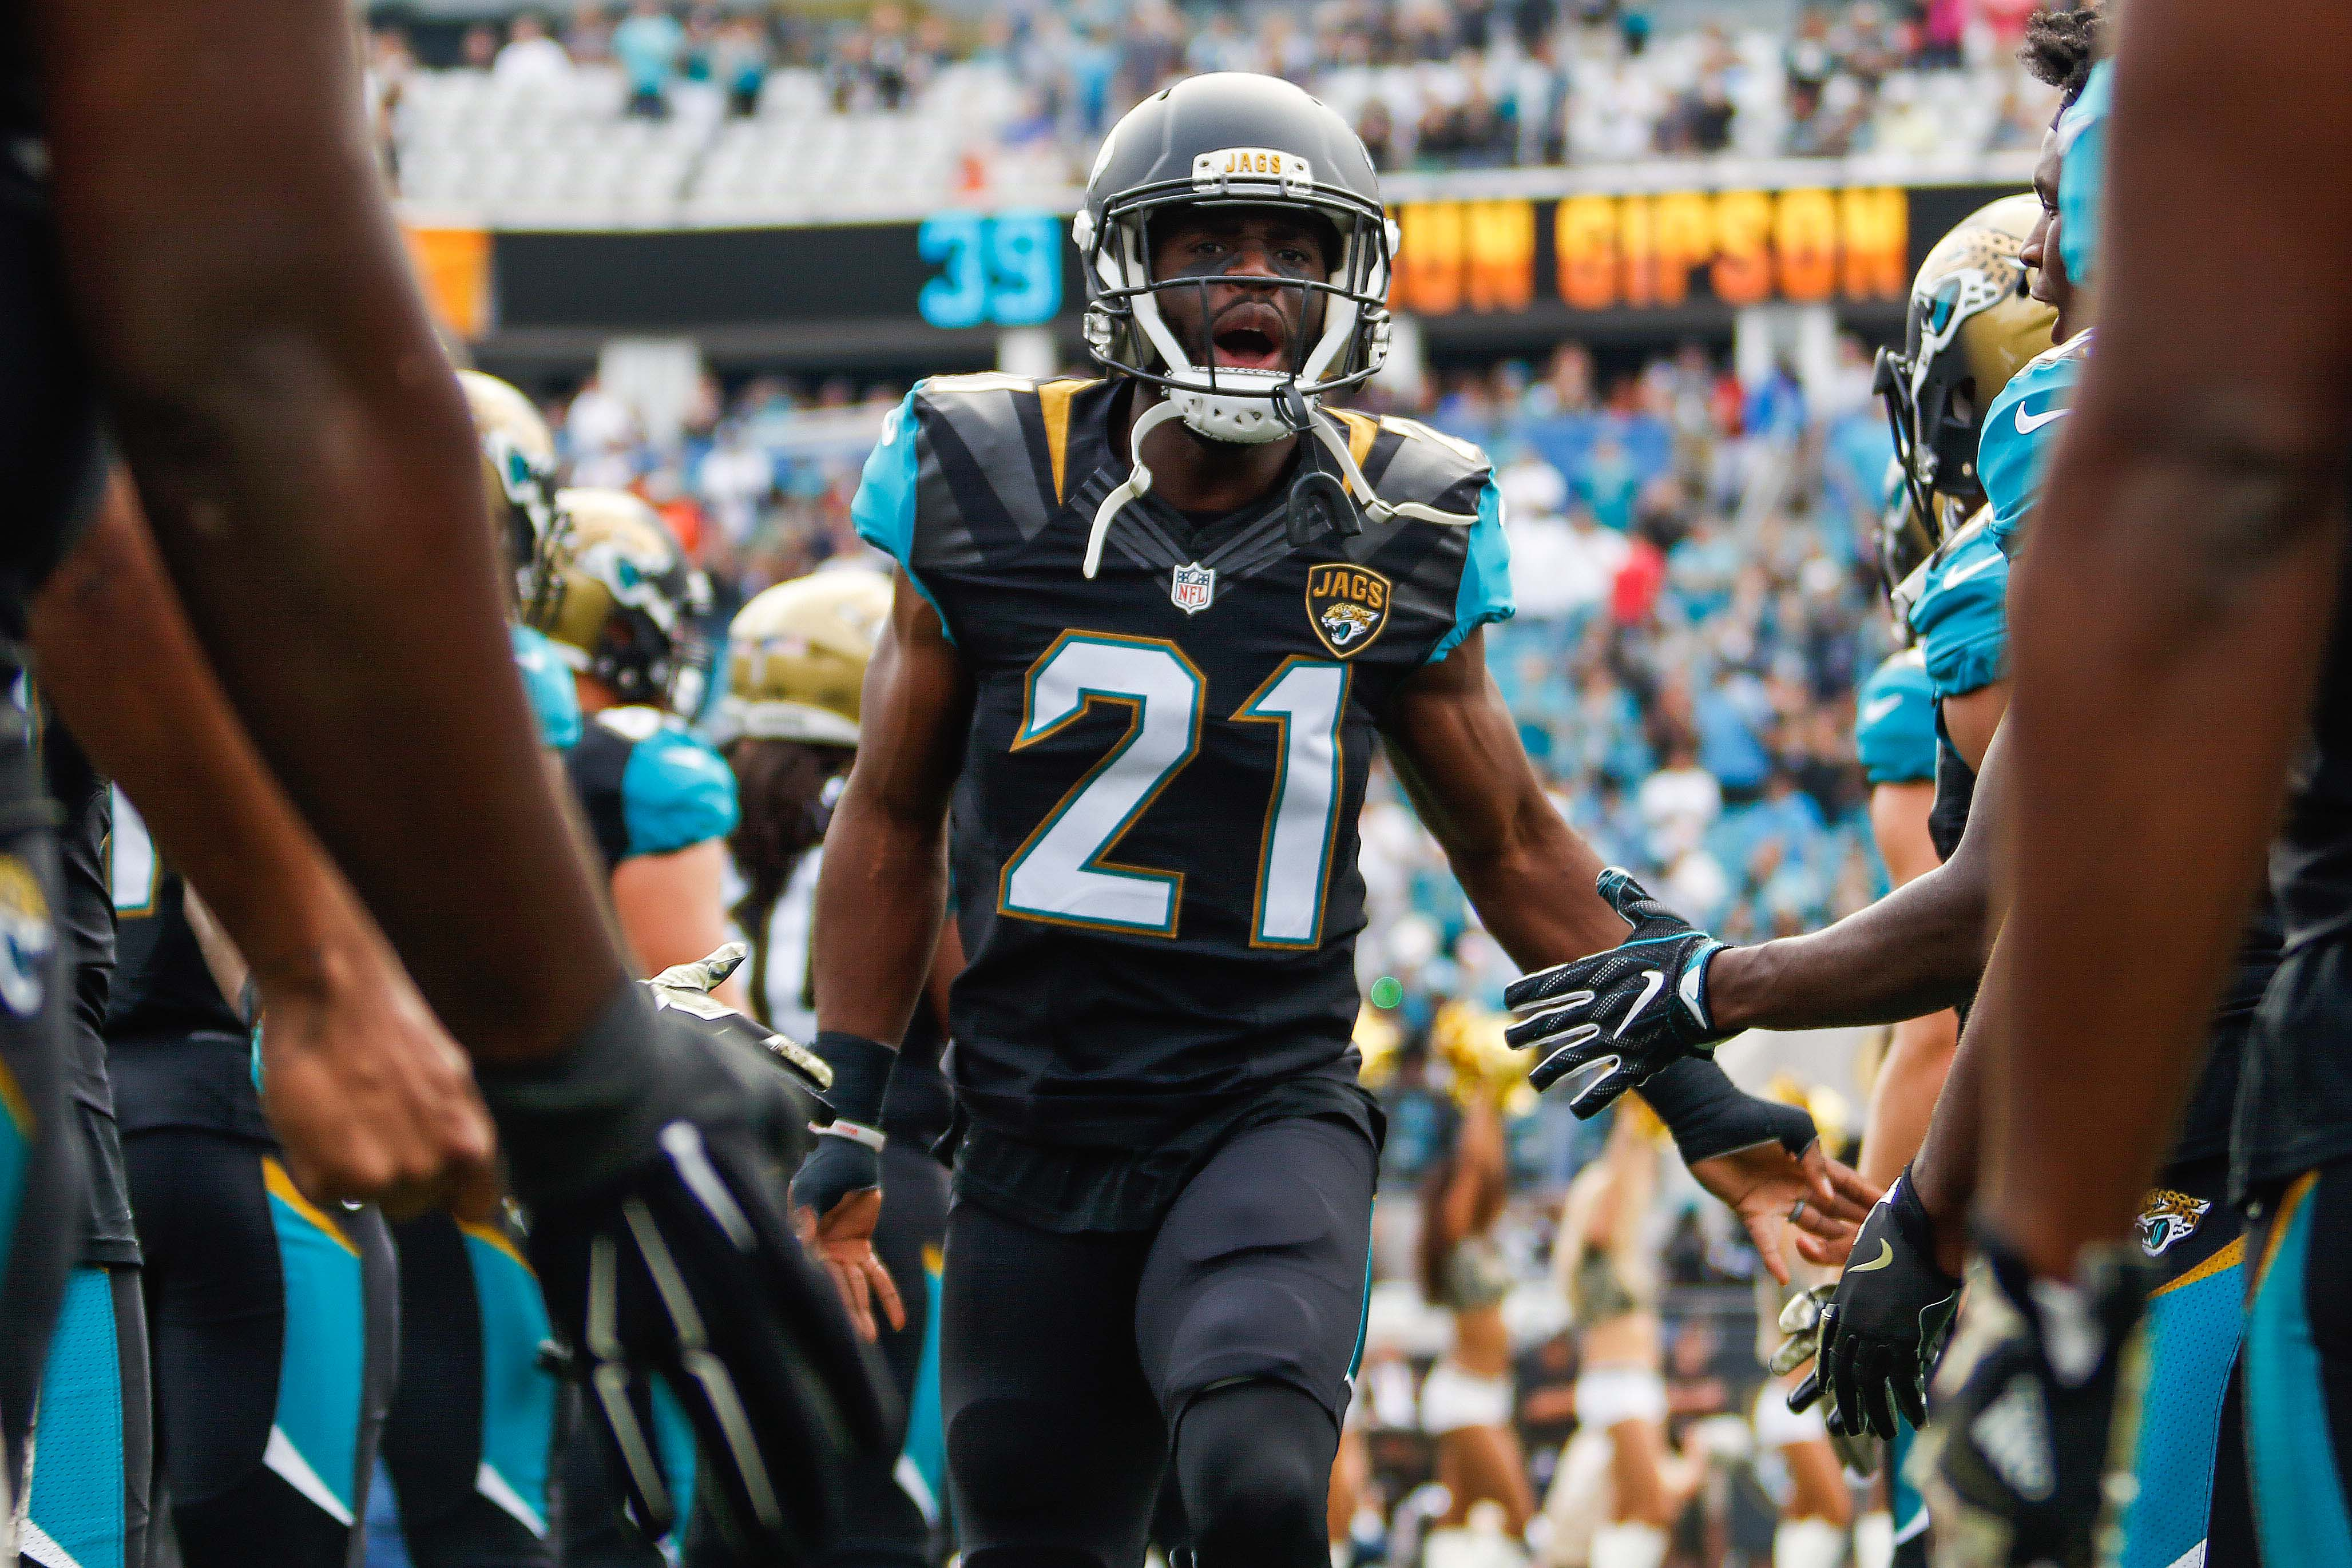 9682861-nfl-houston-texans-at-jacksonville-jaguars-4